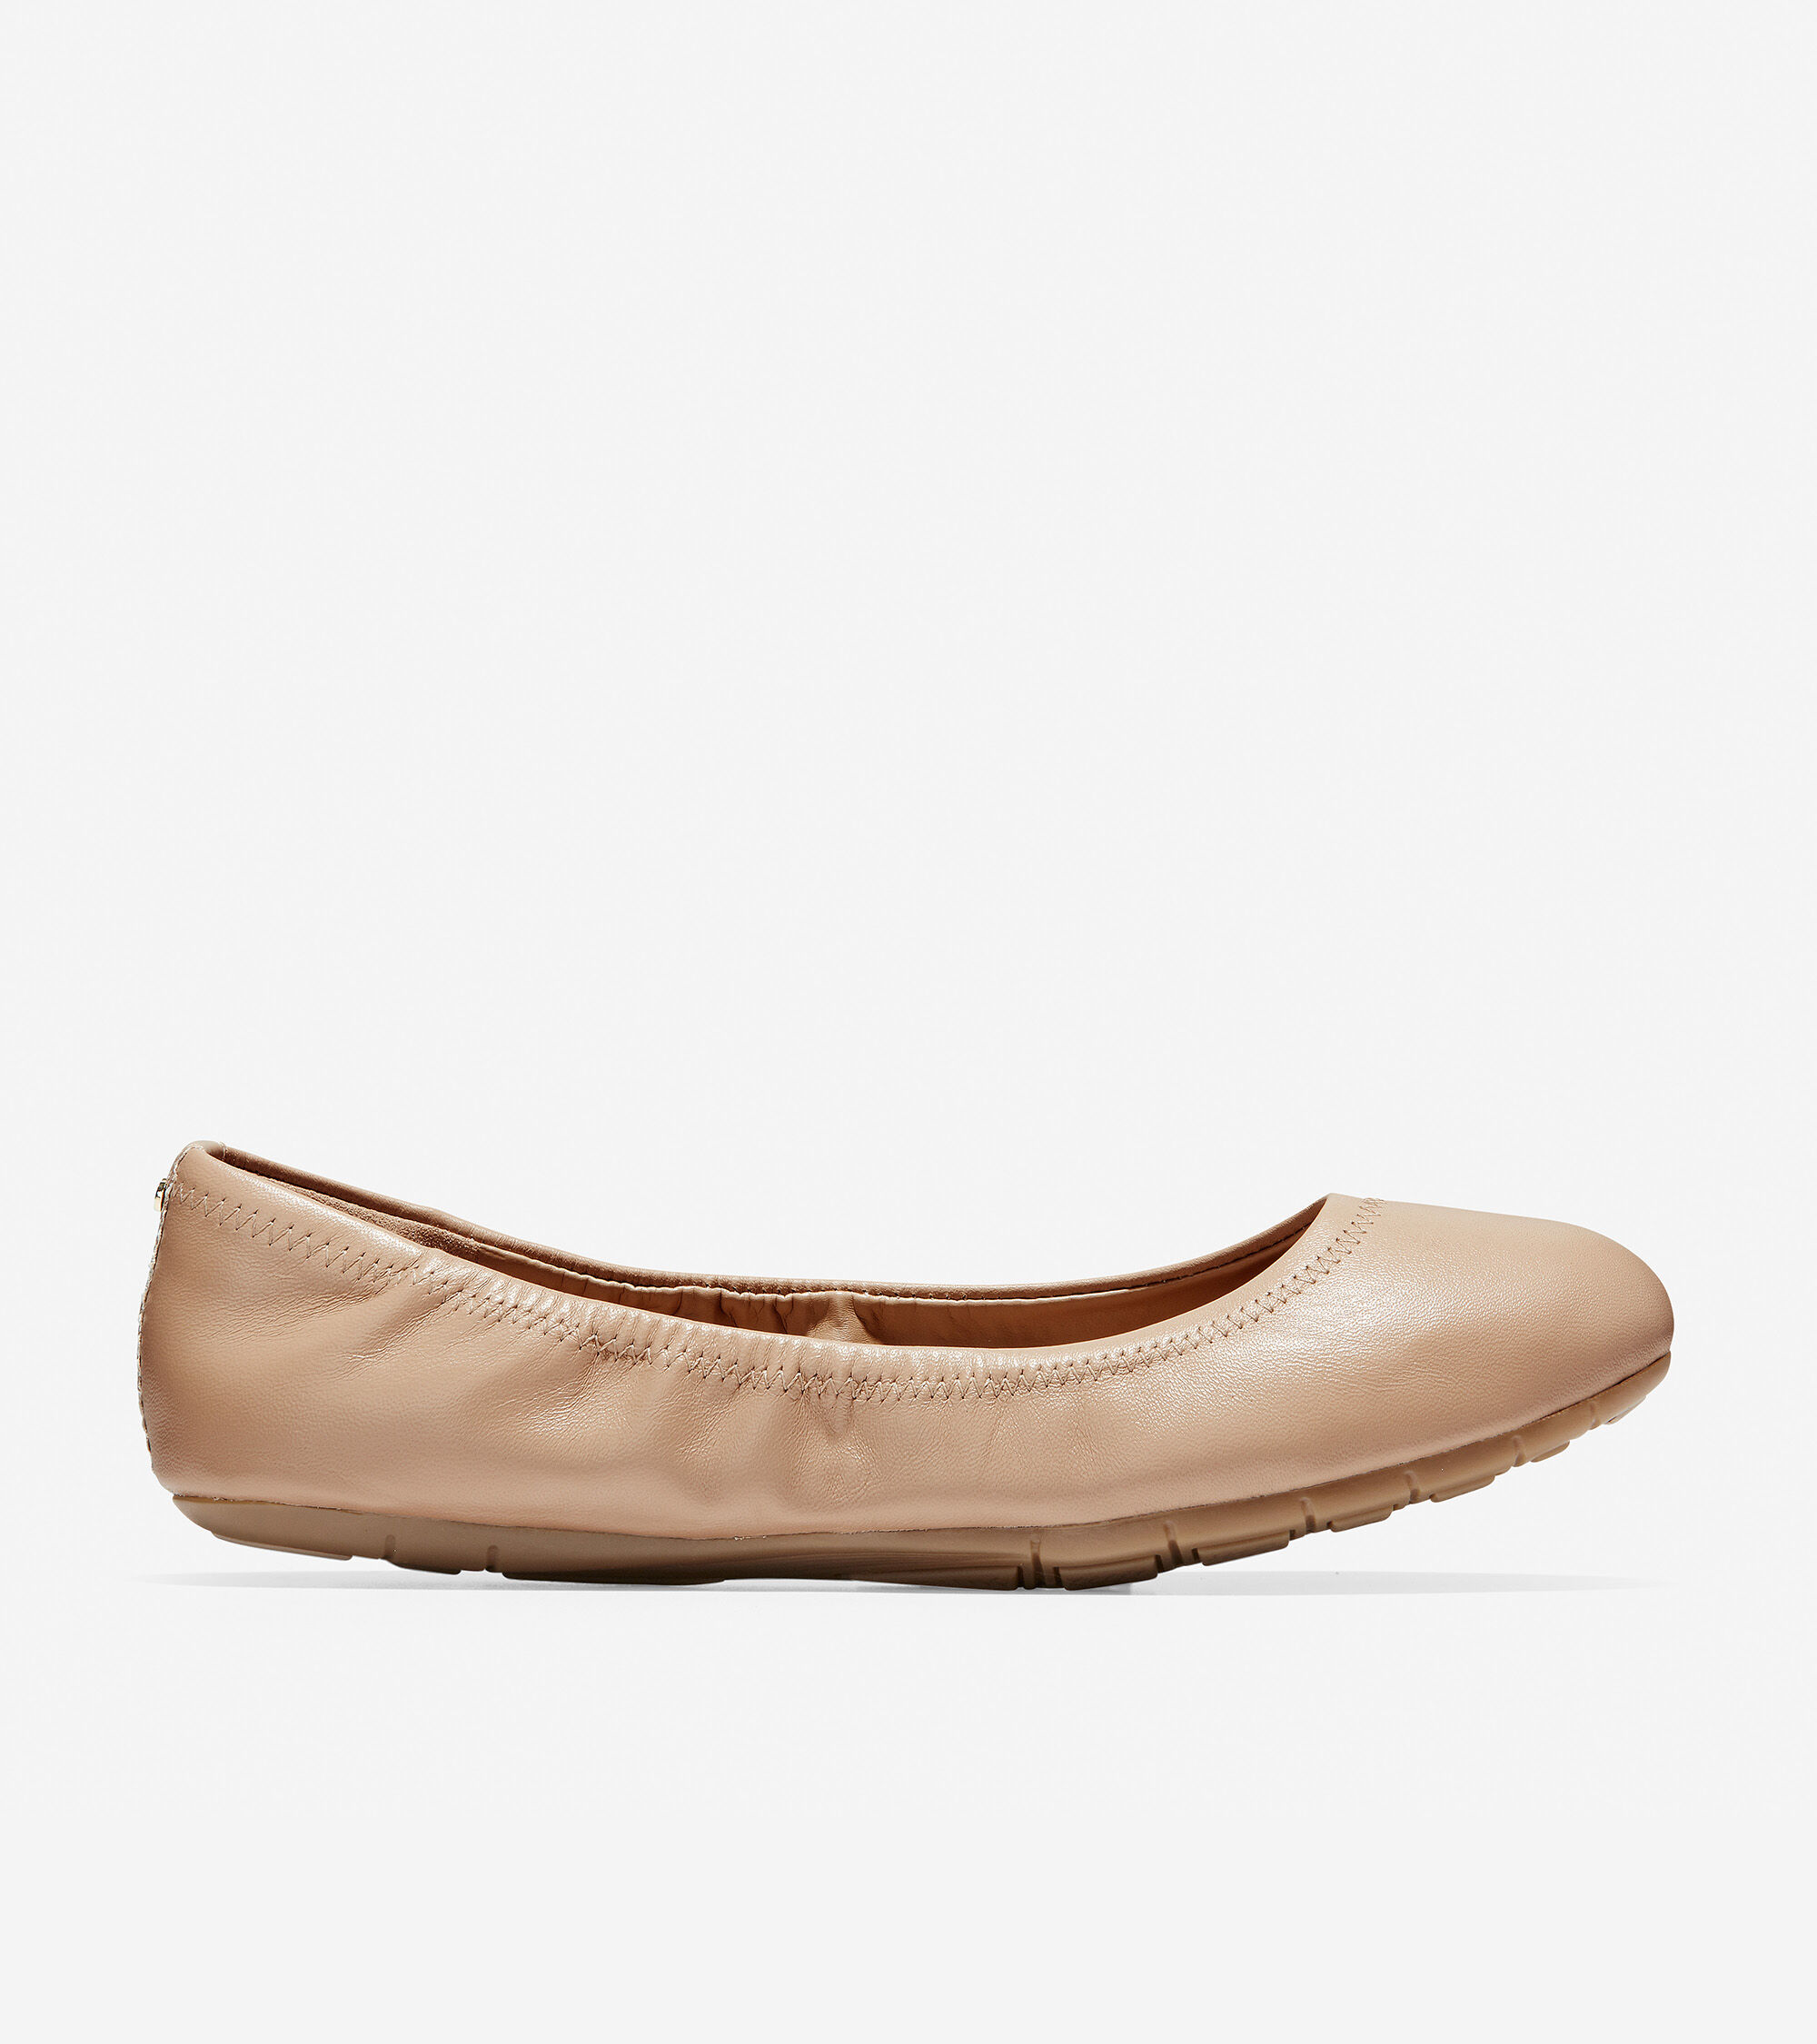 Ballet Flat in Maple Sugar Leather